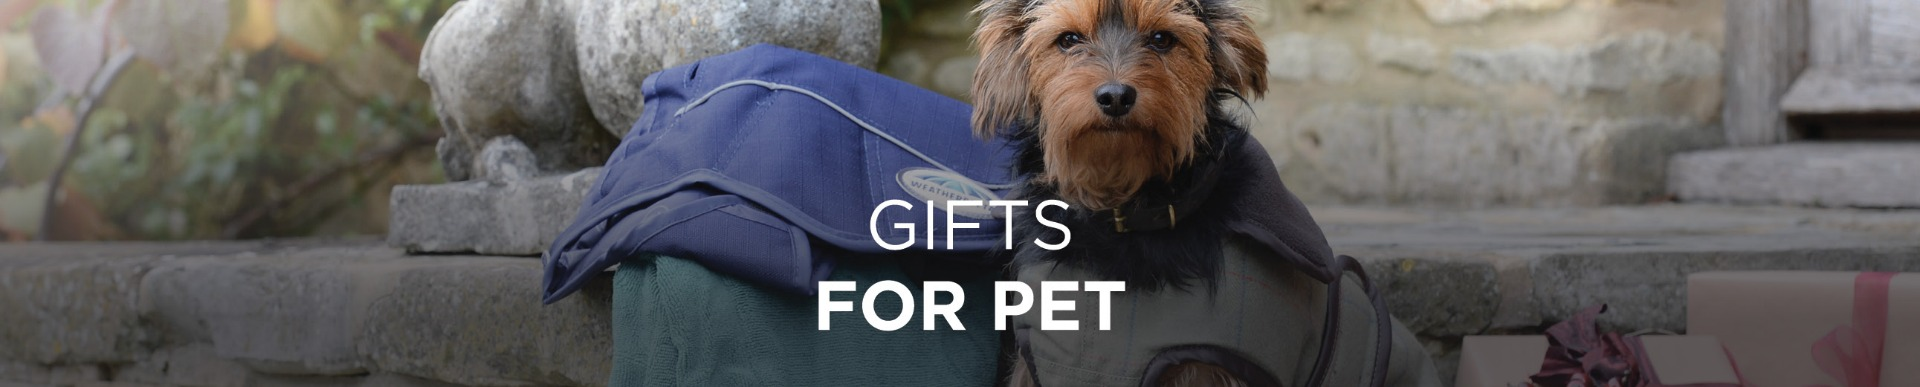 Gifts for Dog Lovers - WeatherBeeta